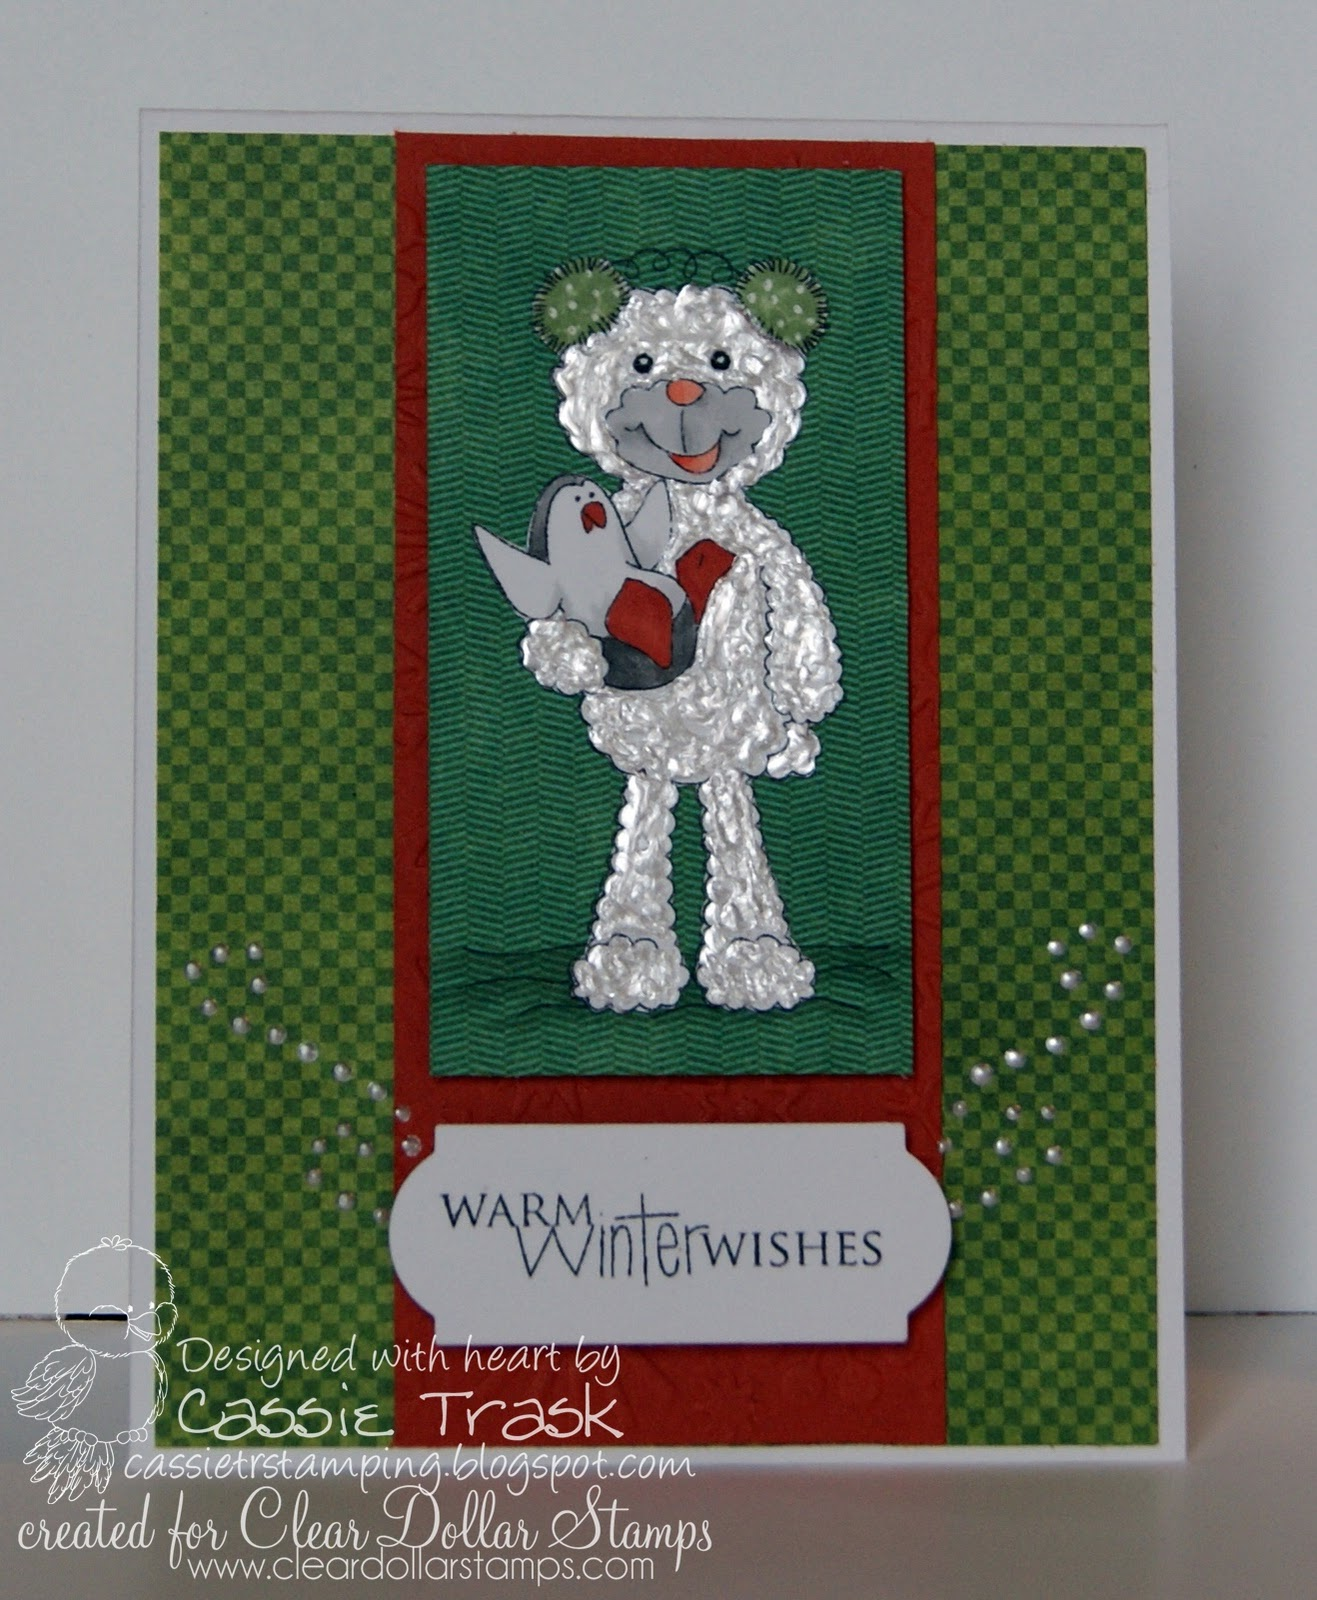 Cassie's Paper Piecings: Clear Dollar Stamps: Product